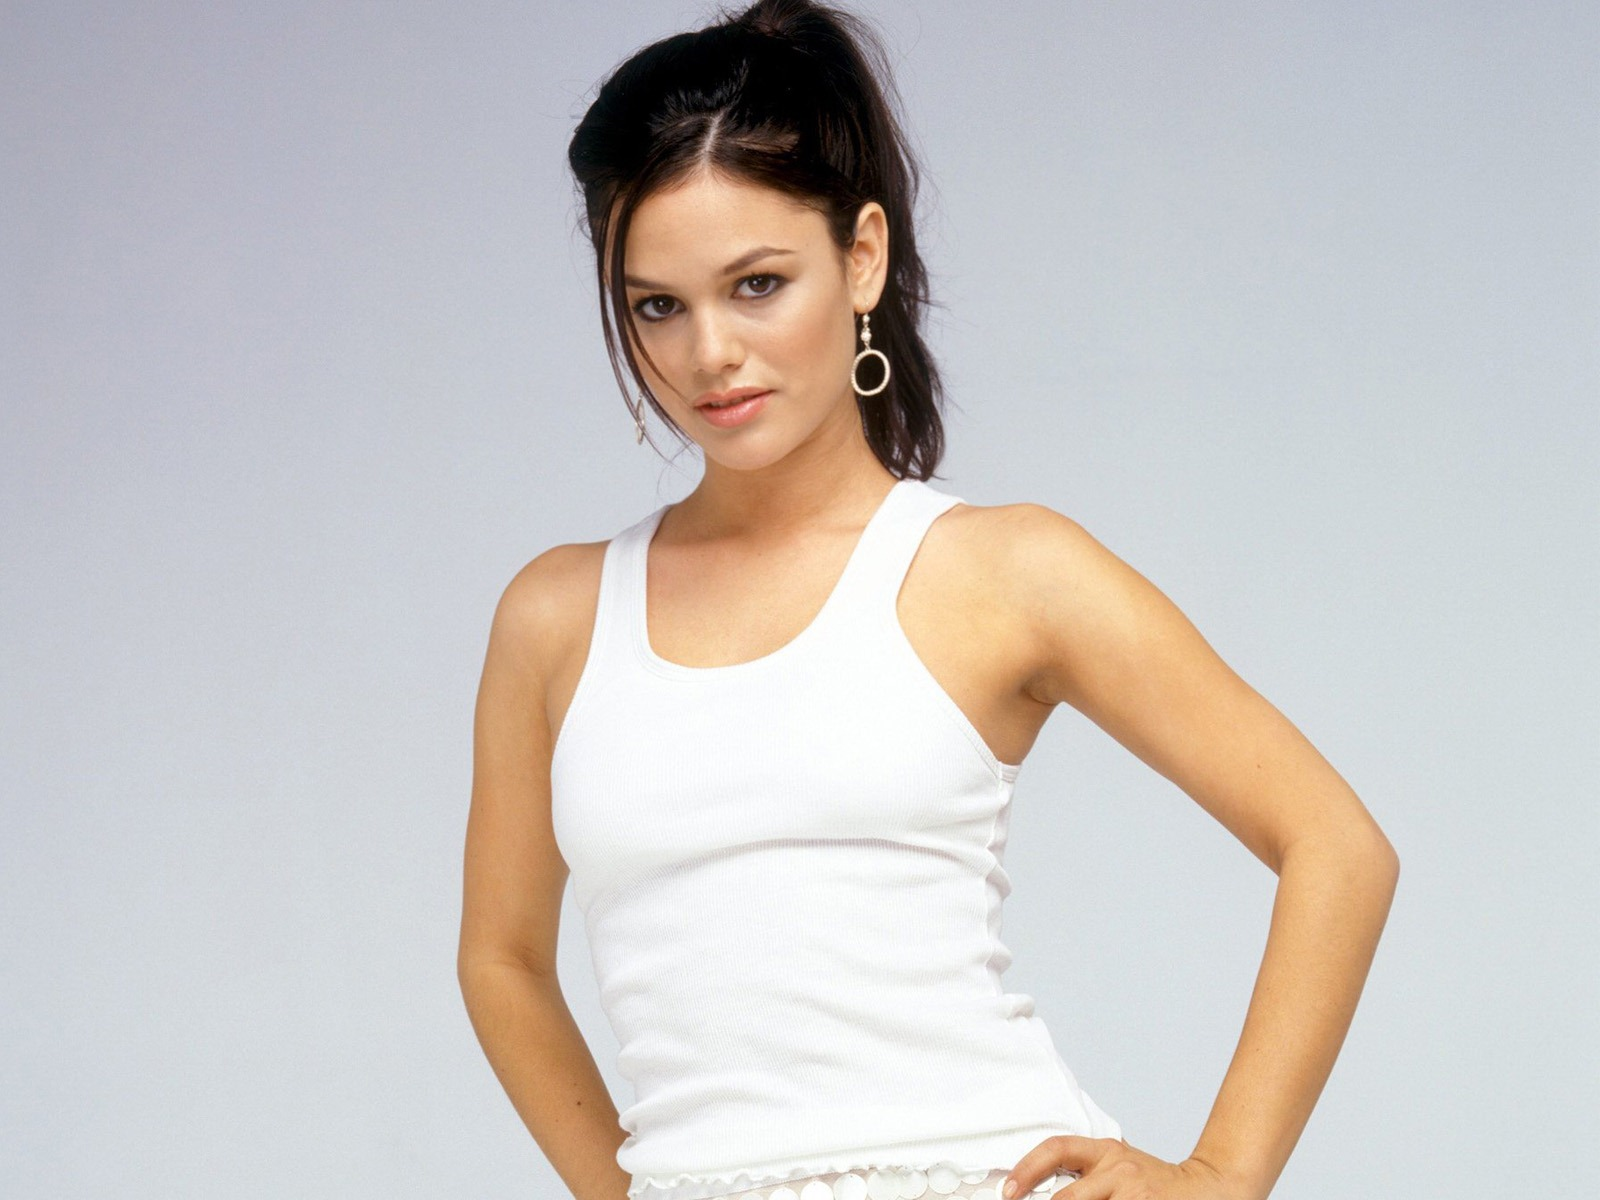 rachel bilson latest wallpapers 2013 - photo #7